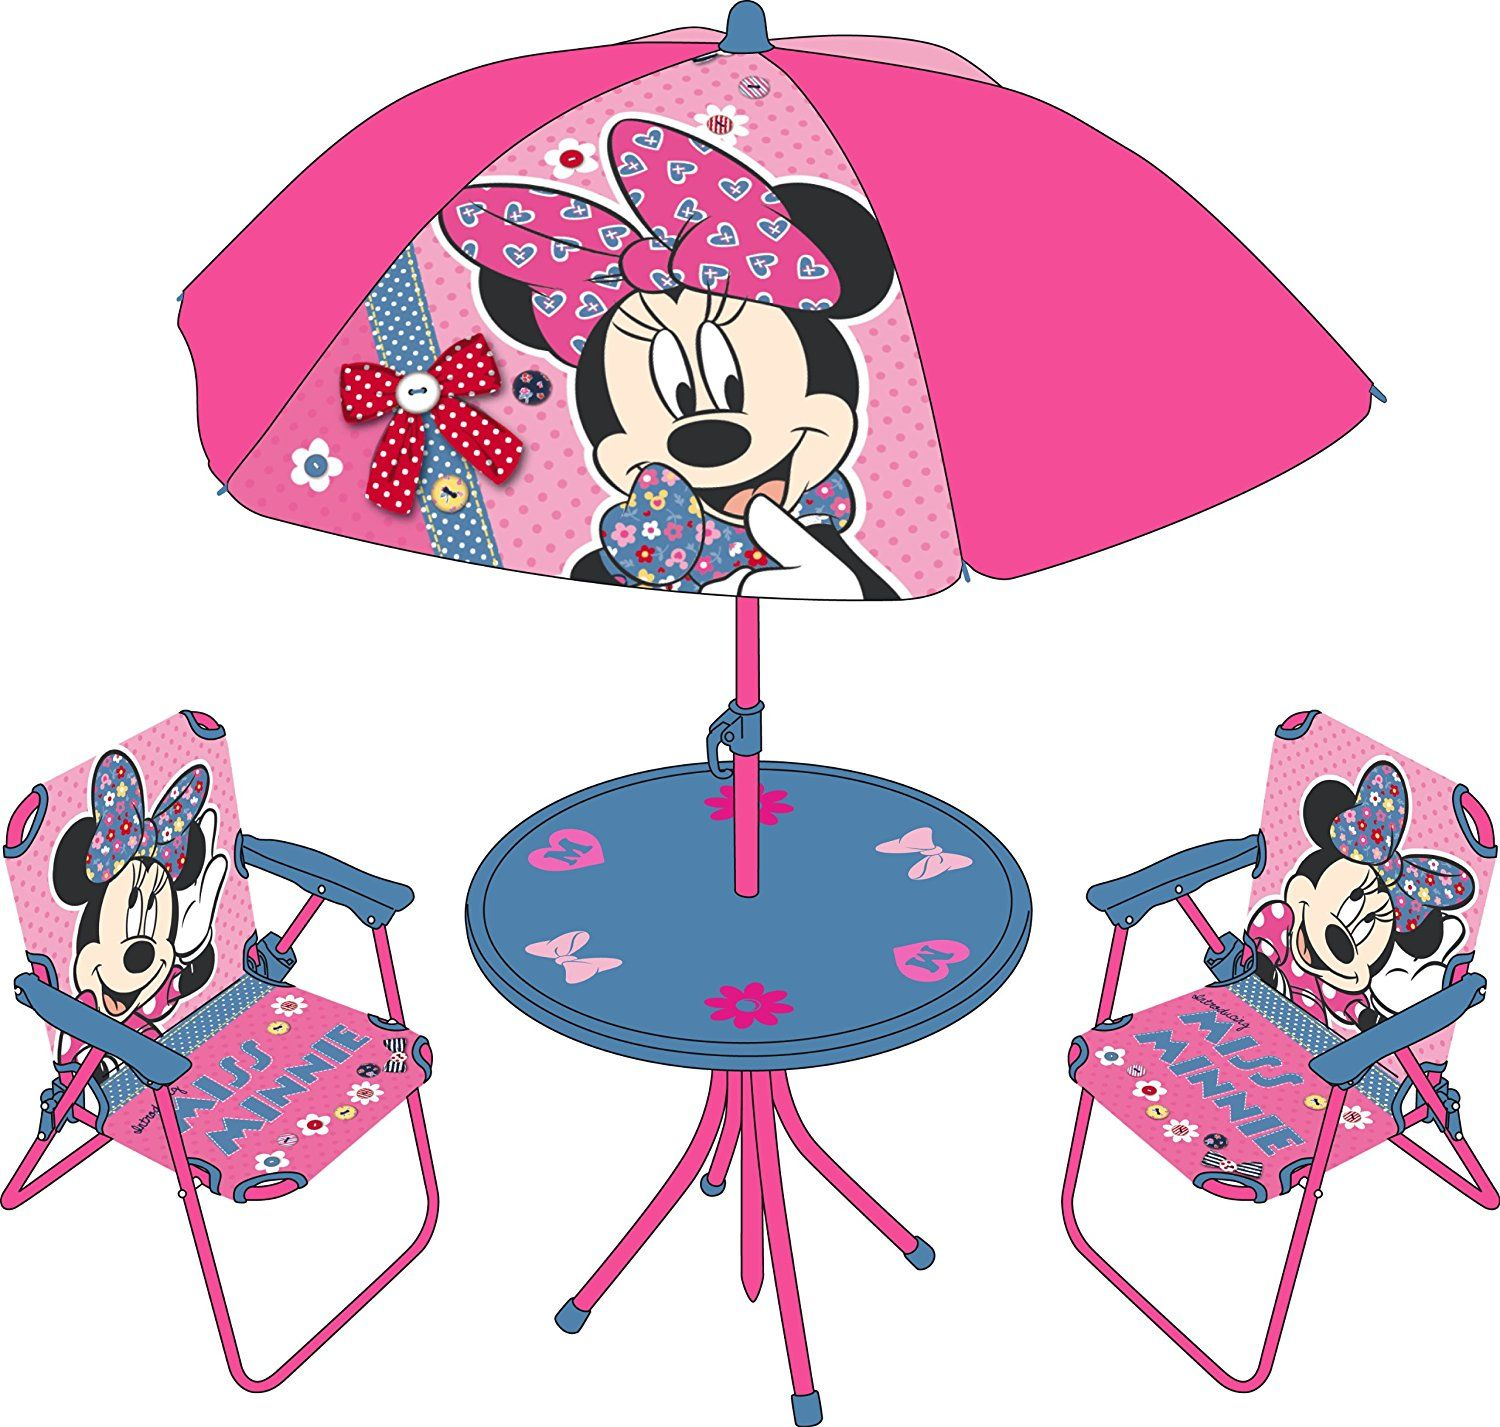 Minnie Maus Sessel Minnie Mouse Kinder Gartengarnitur 2 Sessel Sonnenschirm